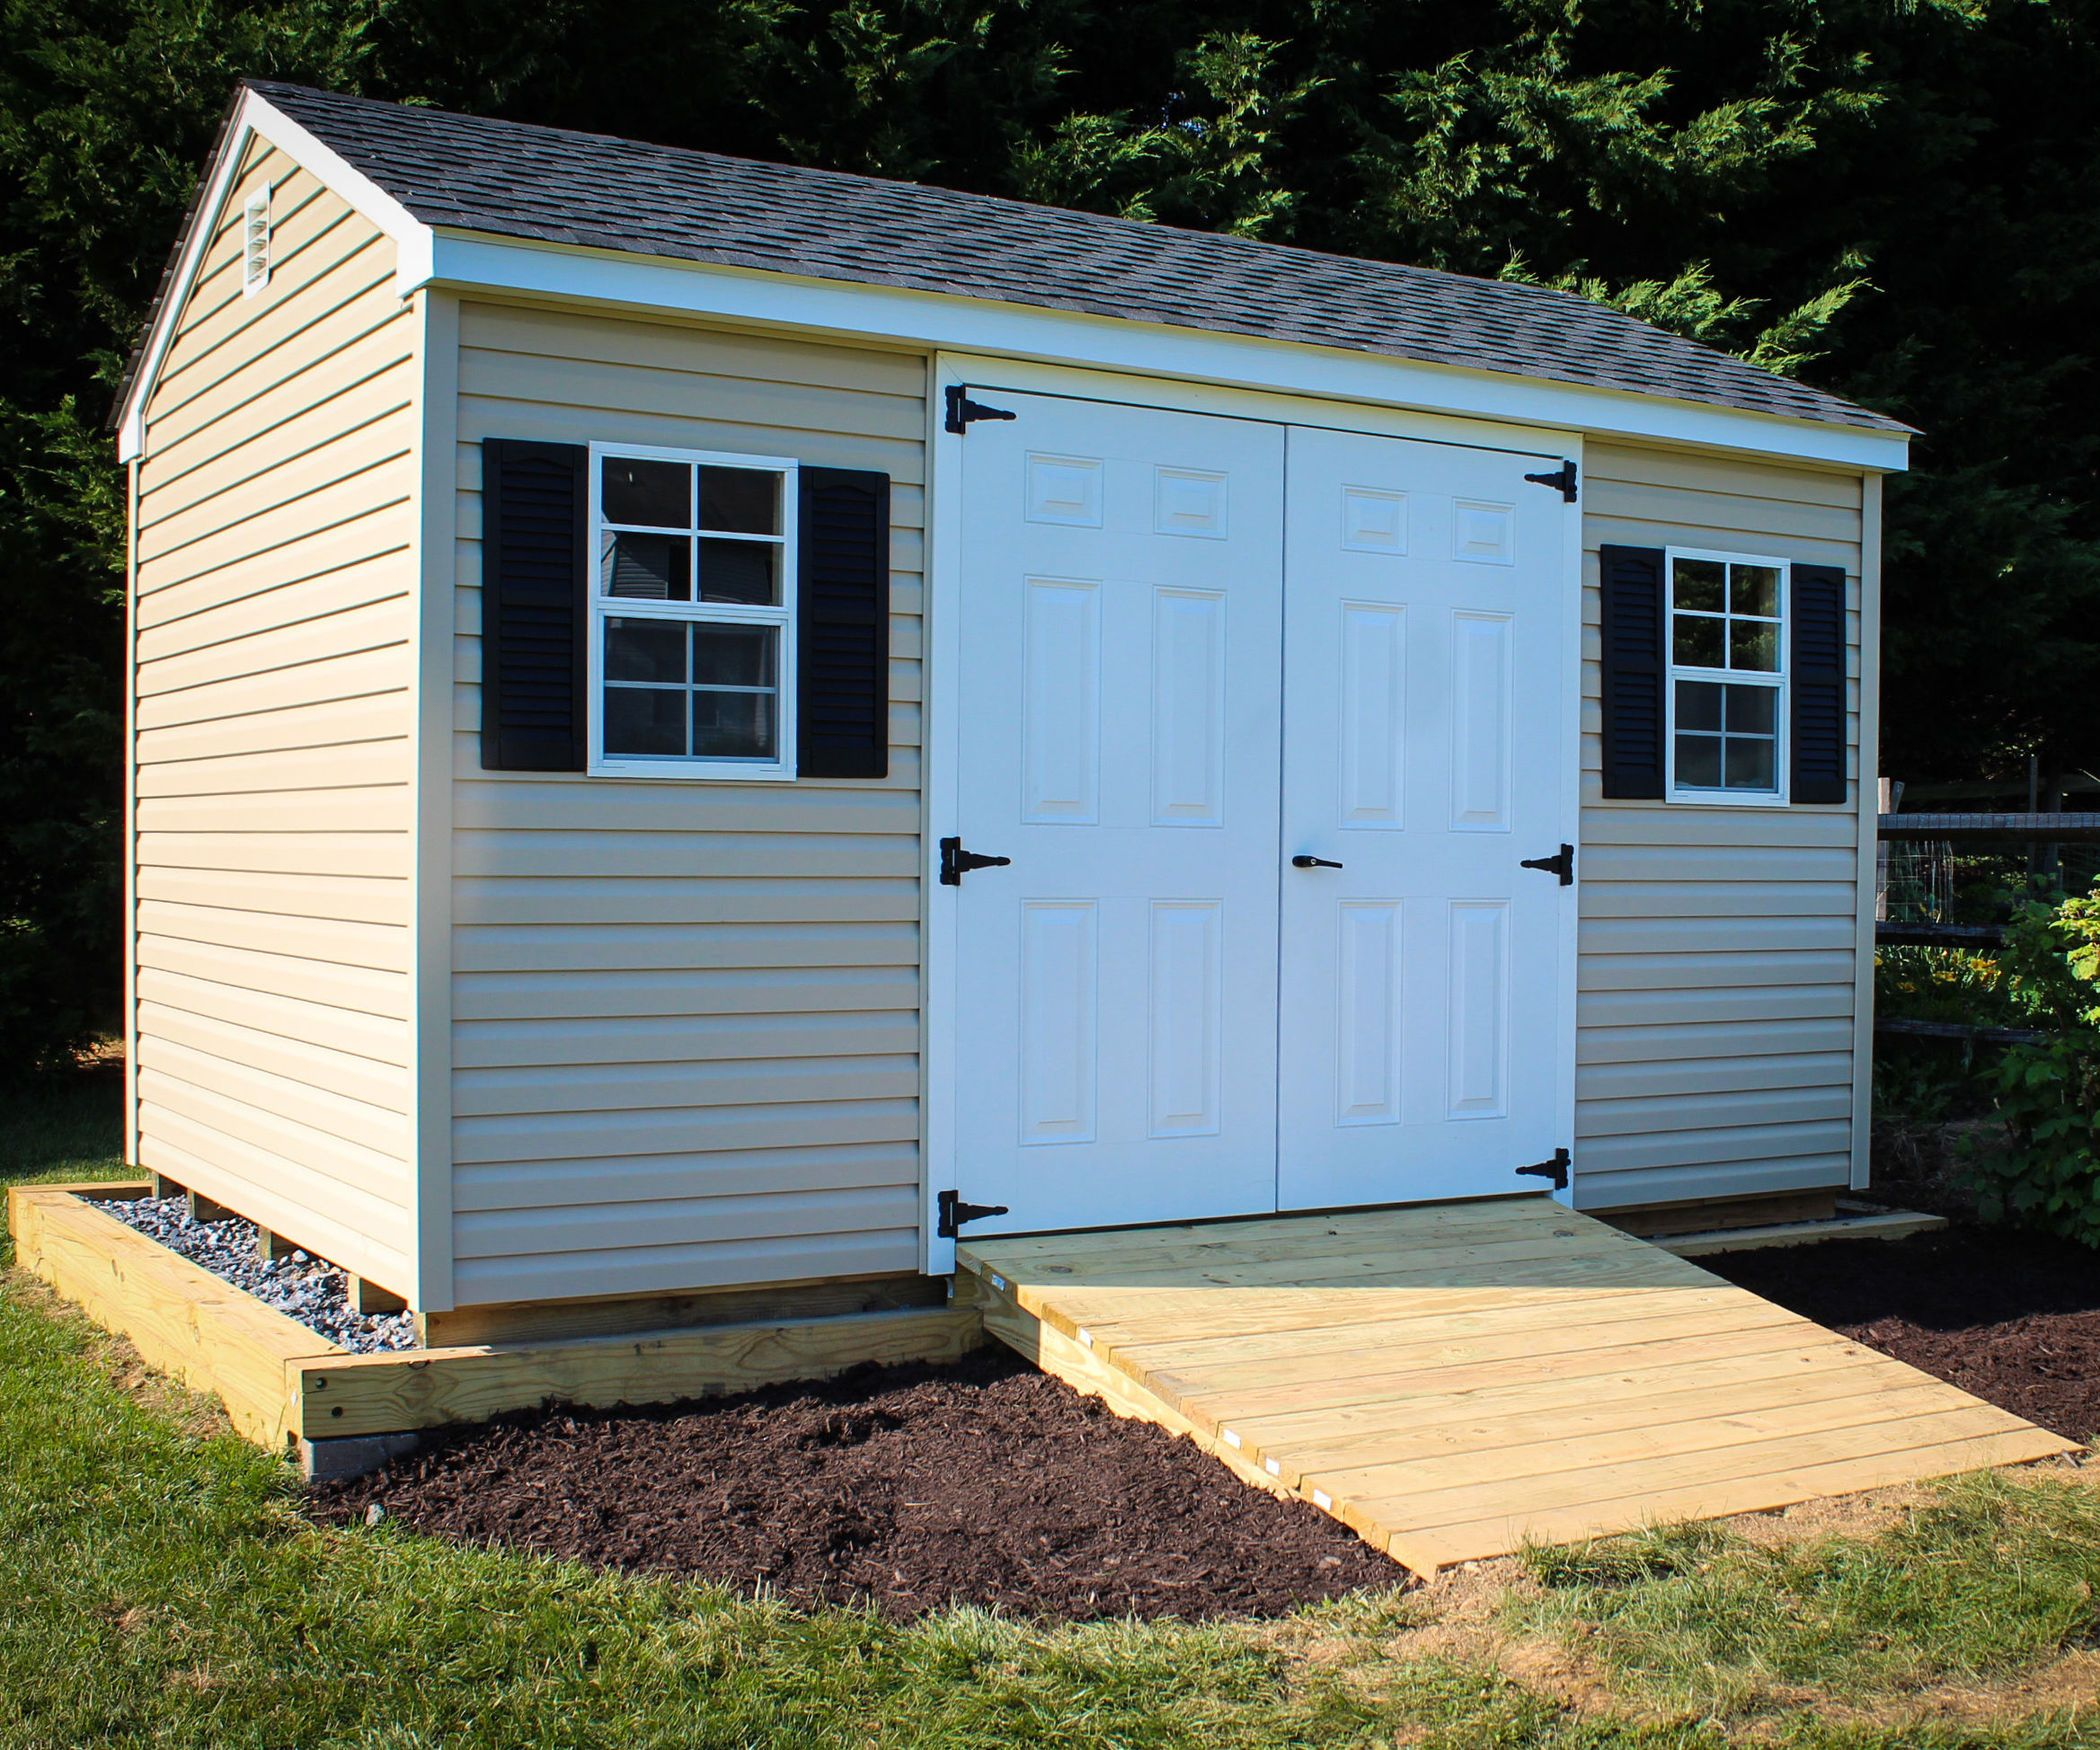 Shed ramp garden equipment lawn and foundation for 2 storage house